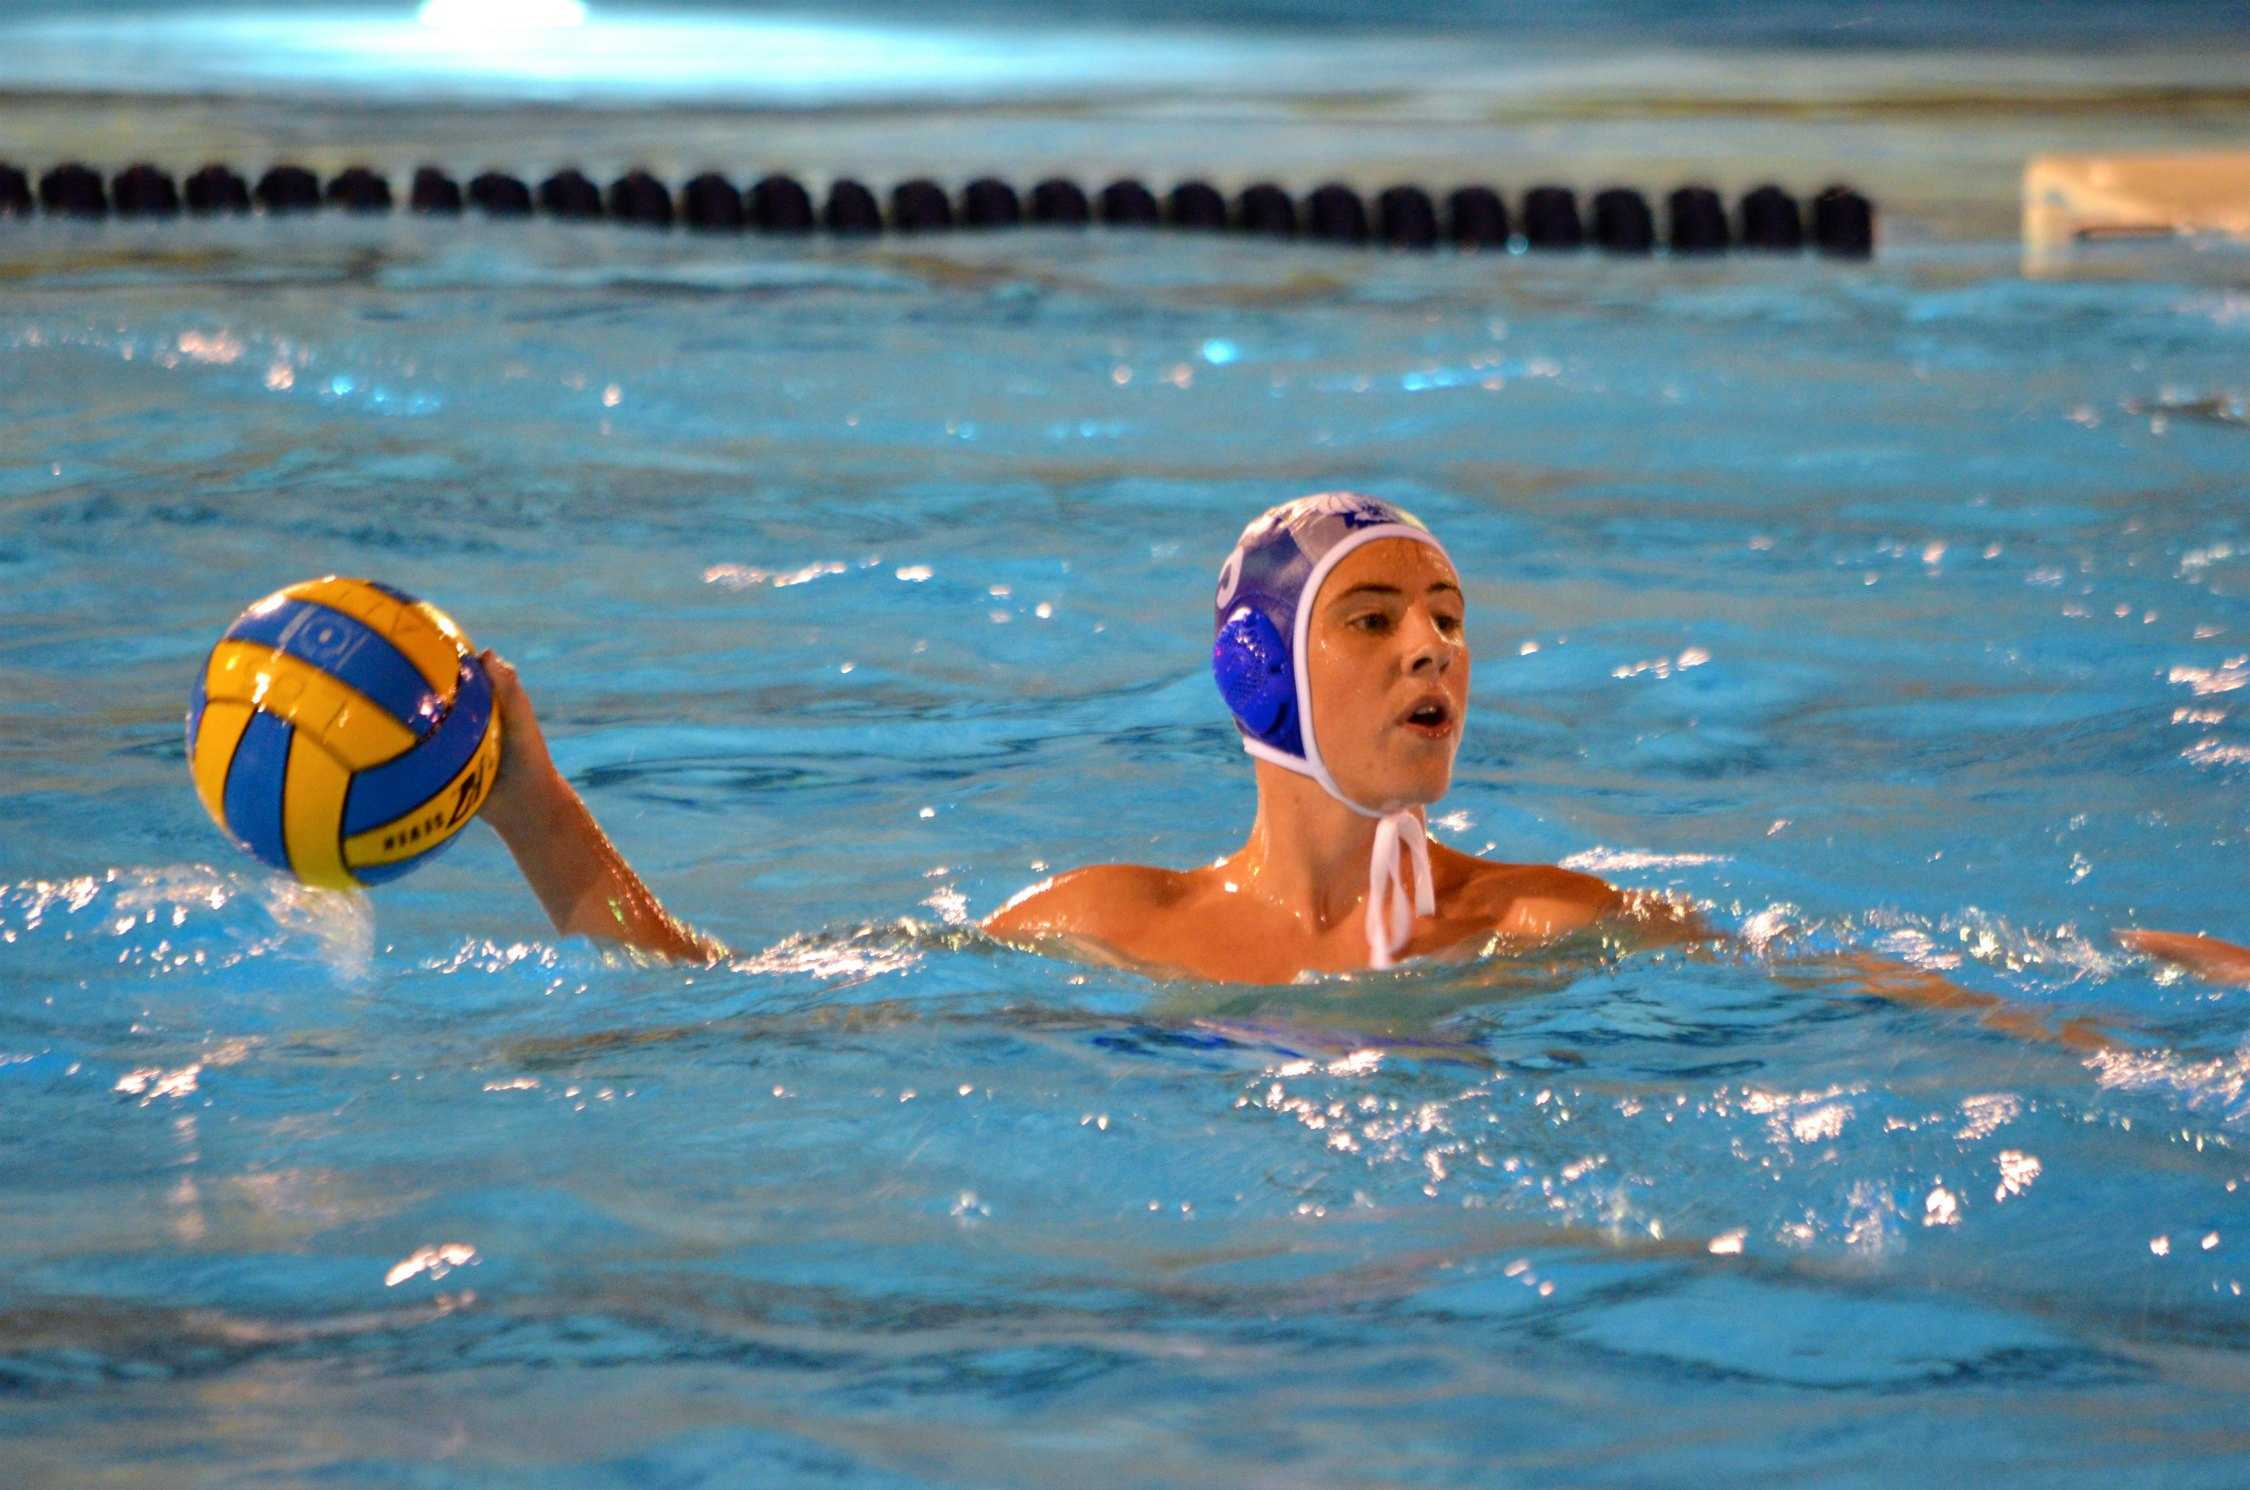 Sophomore Eric Warmoth looks to make a pass. Photo by Kunal Pandit.